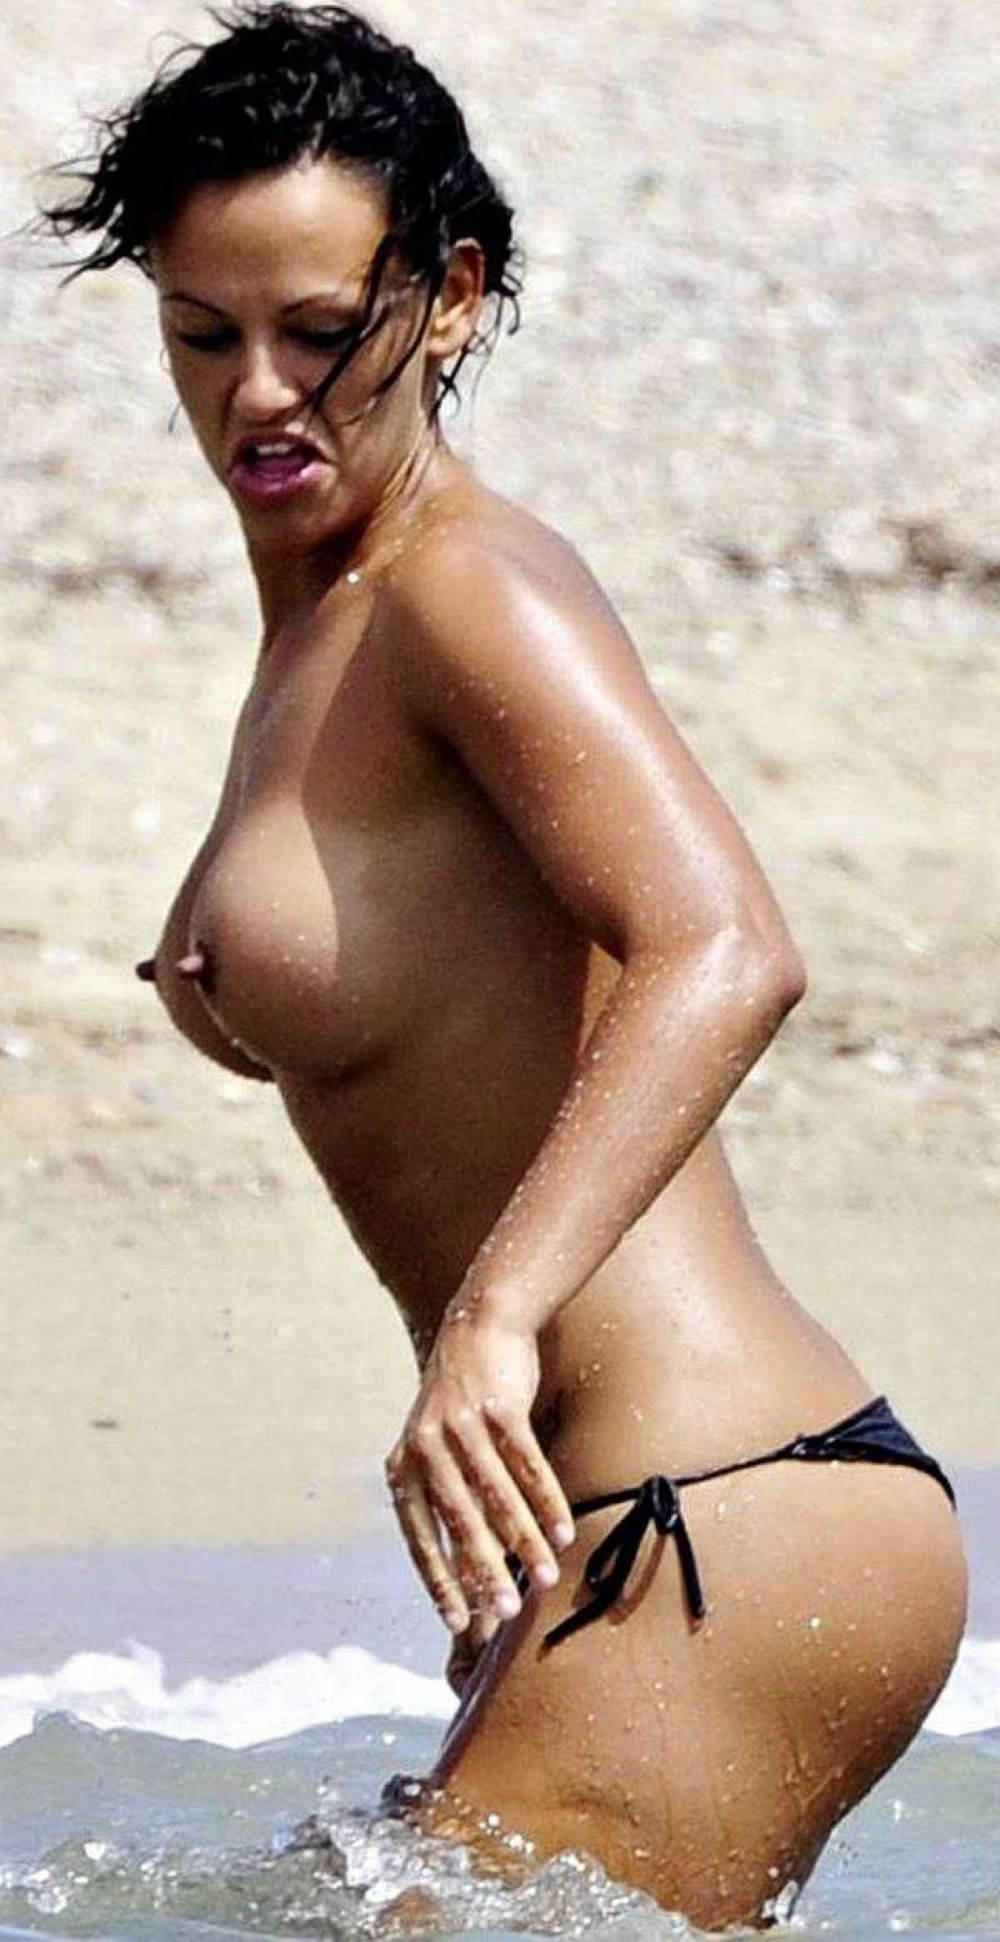 Nereida-Gallardo-topless-at-the-beach-pi